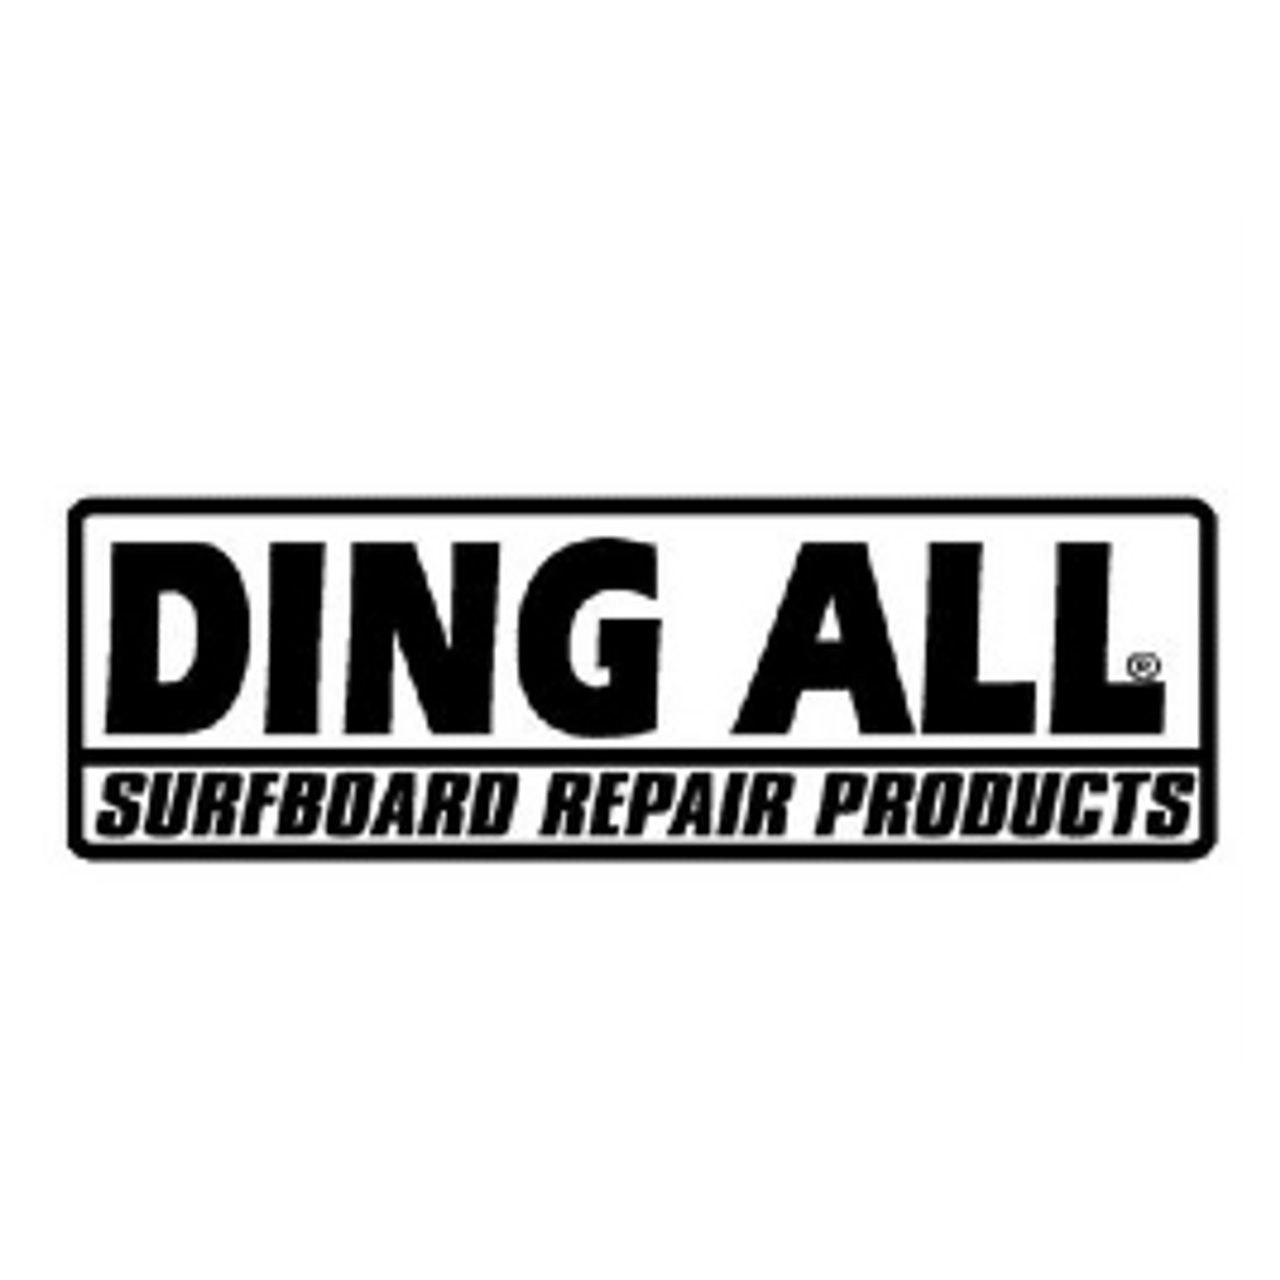 Ding All